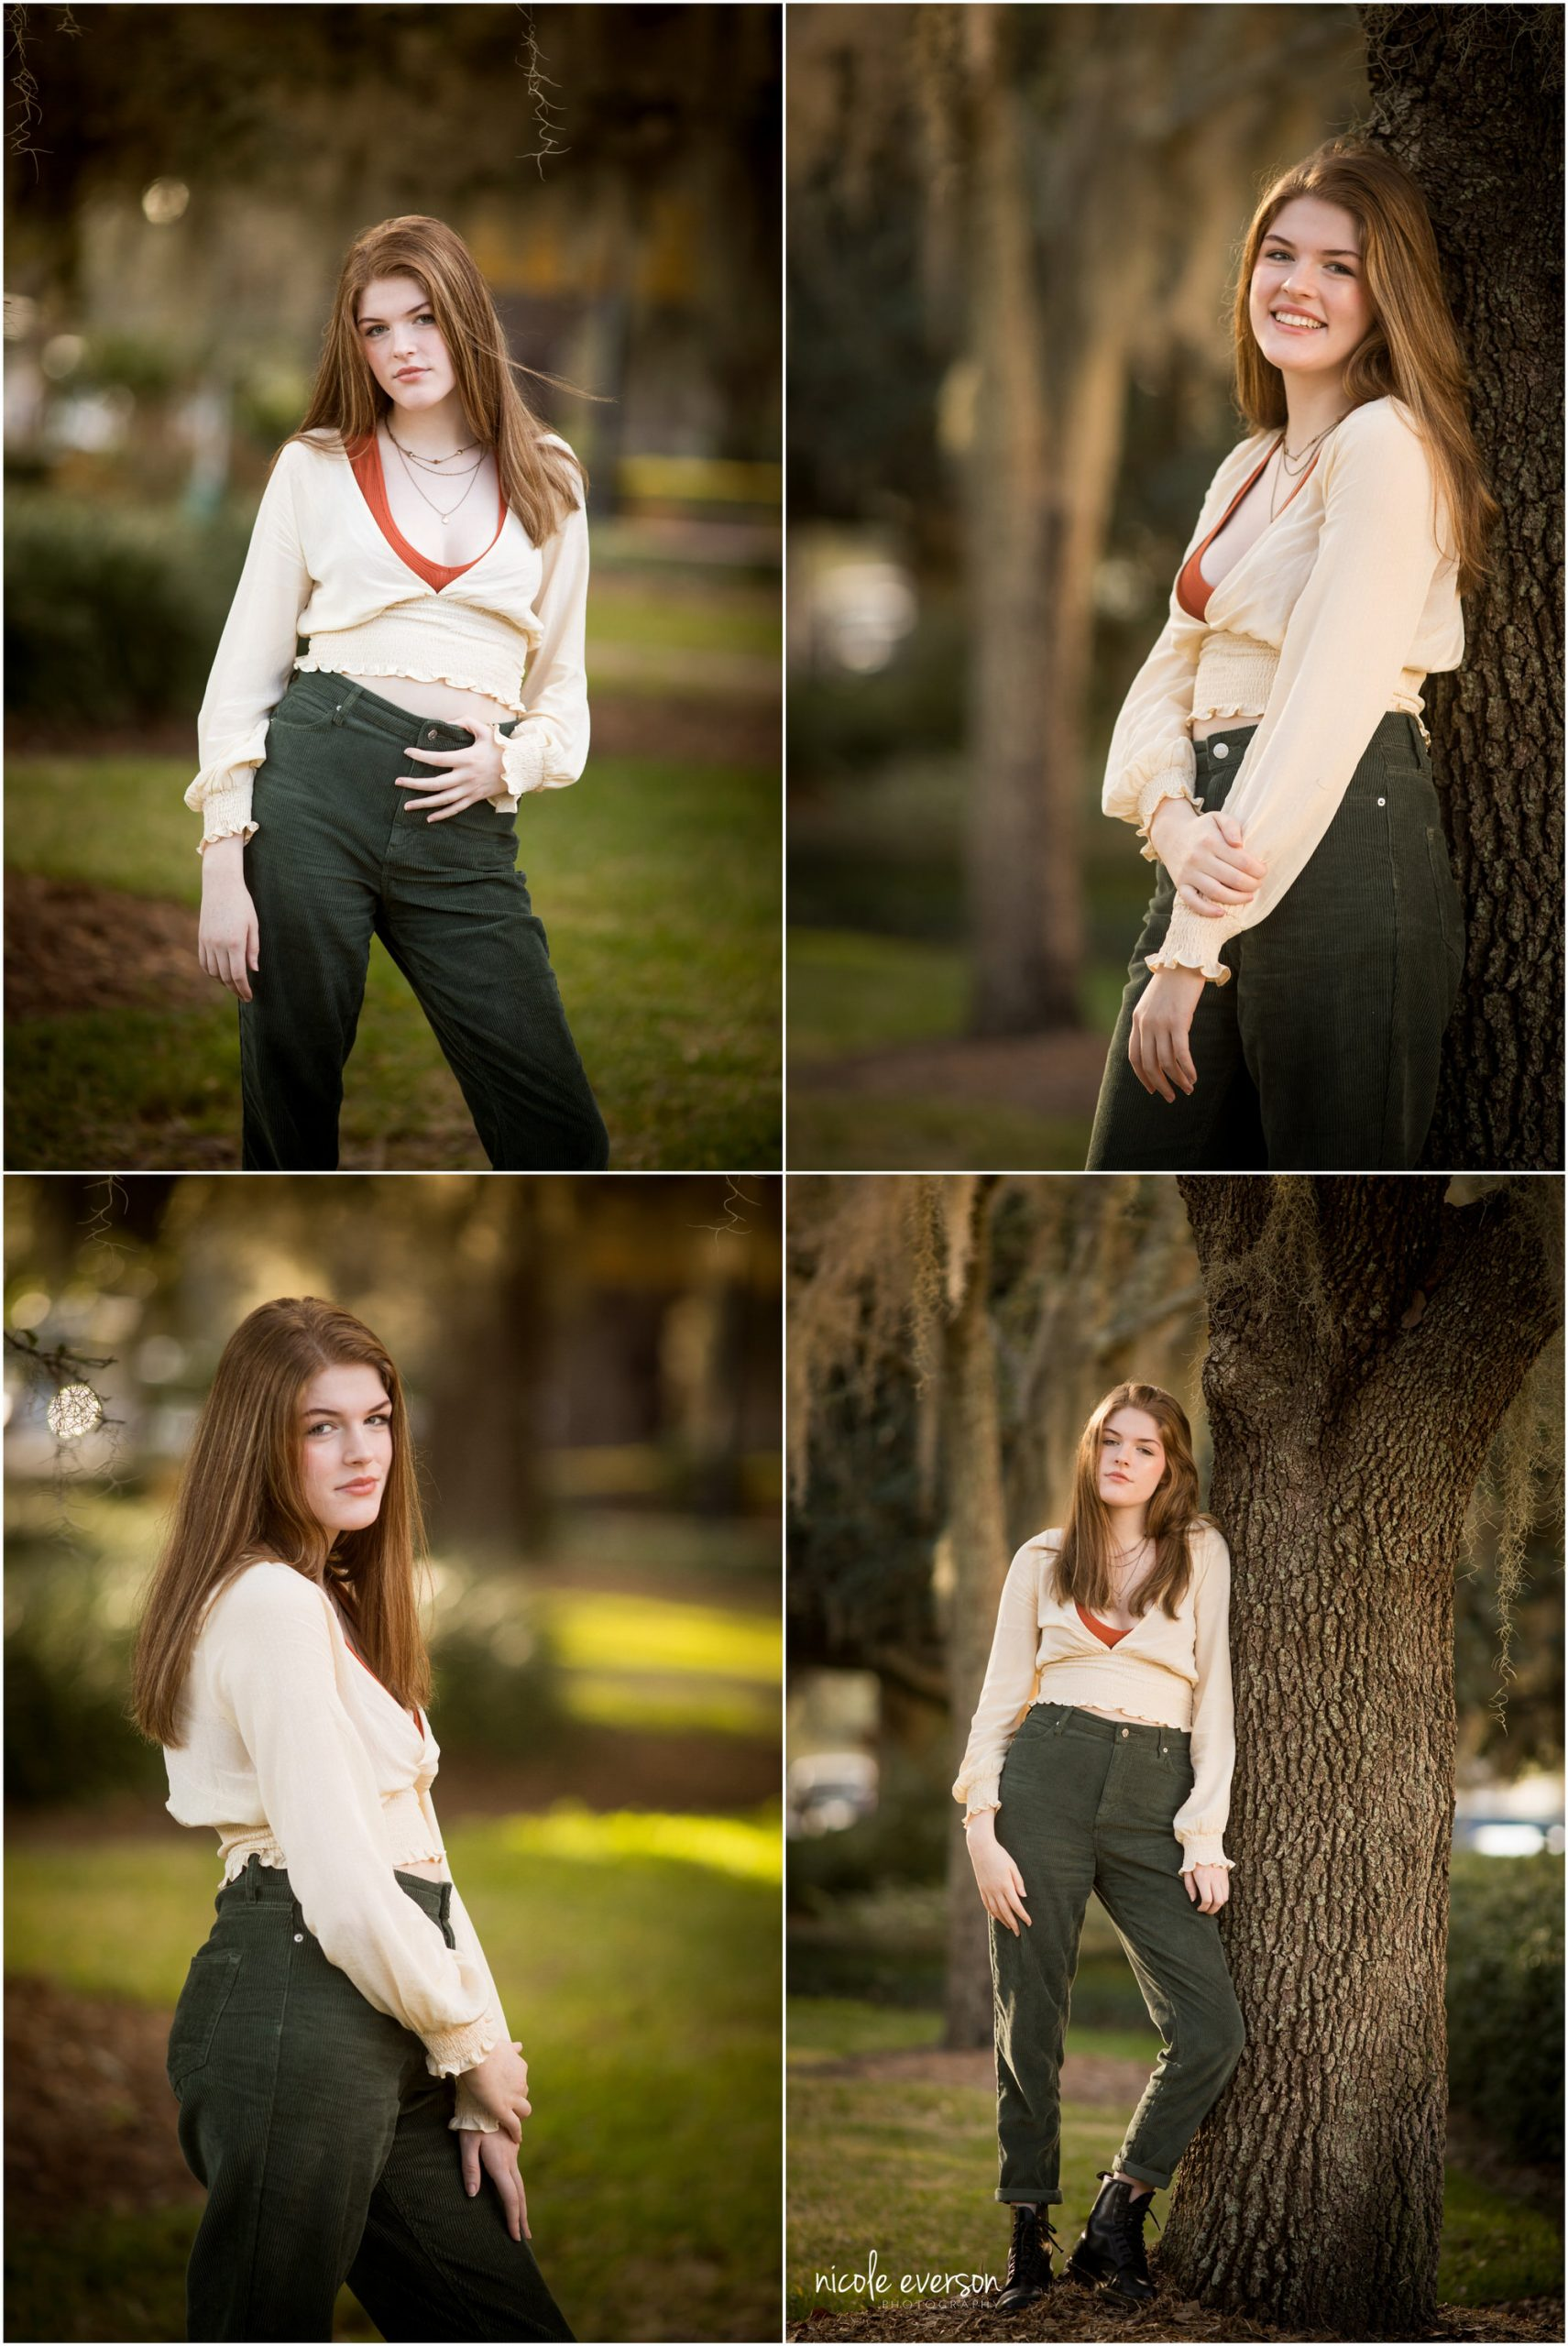 High school senior girl in a cream shirt and jeans, standing next to a tree. Tallahassee Florida Senior Photography. Nicole Everson Photography.